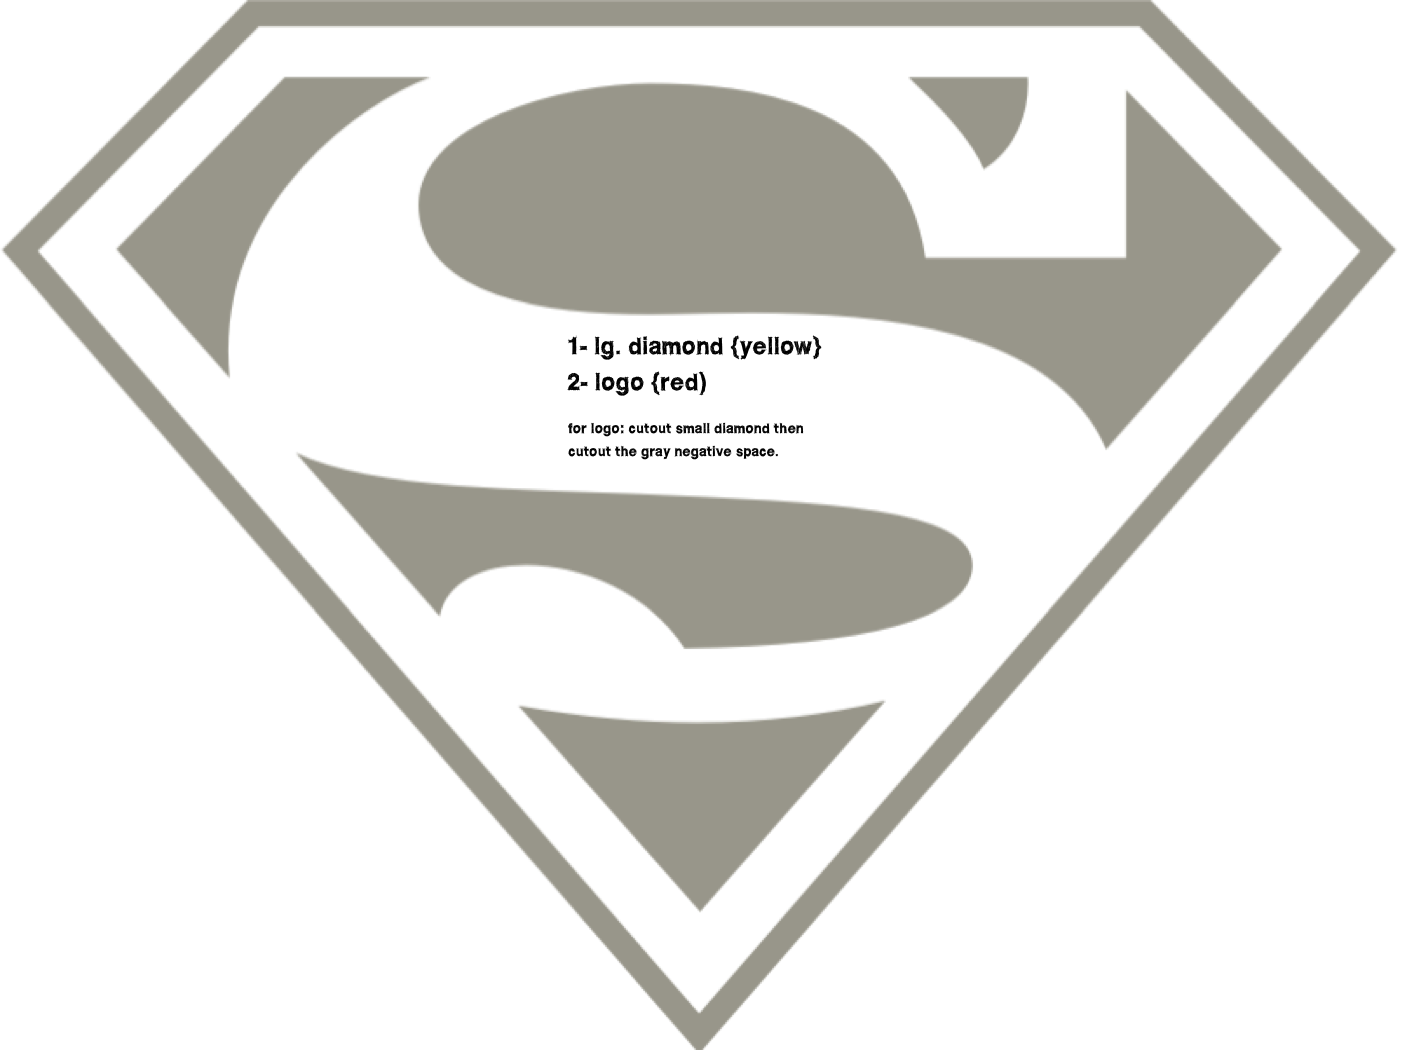 15 superman logo template images printable superman logo superman logo outline and blank. Black Bedroom Furniture Sets. Home Design Ideas